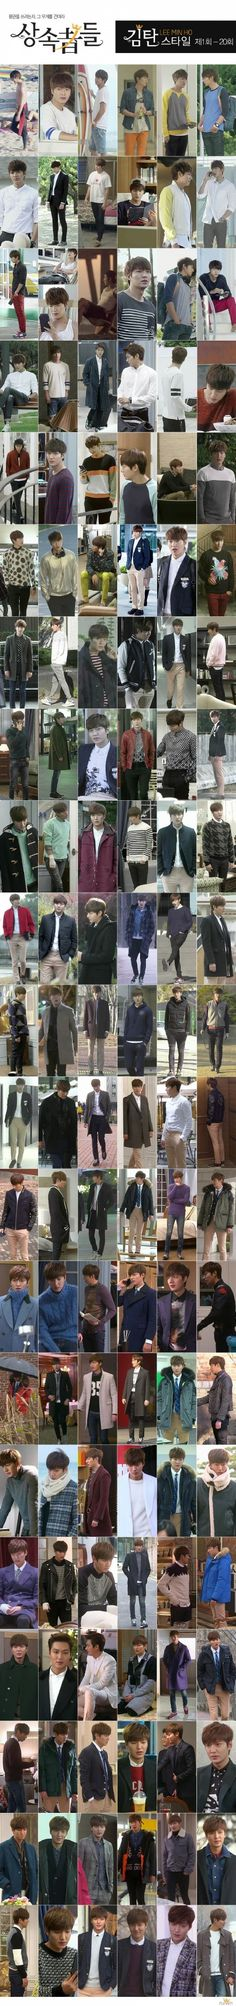 Actor Lee Min Ho : Fashion in The Heirs 相続者たち2周年!|白銀の月明かり ~LEE MIN HO イ・ミンホ 이민호 李敏镐~